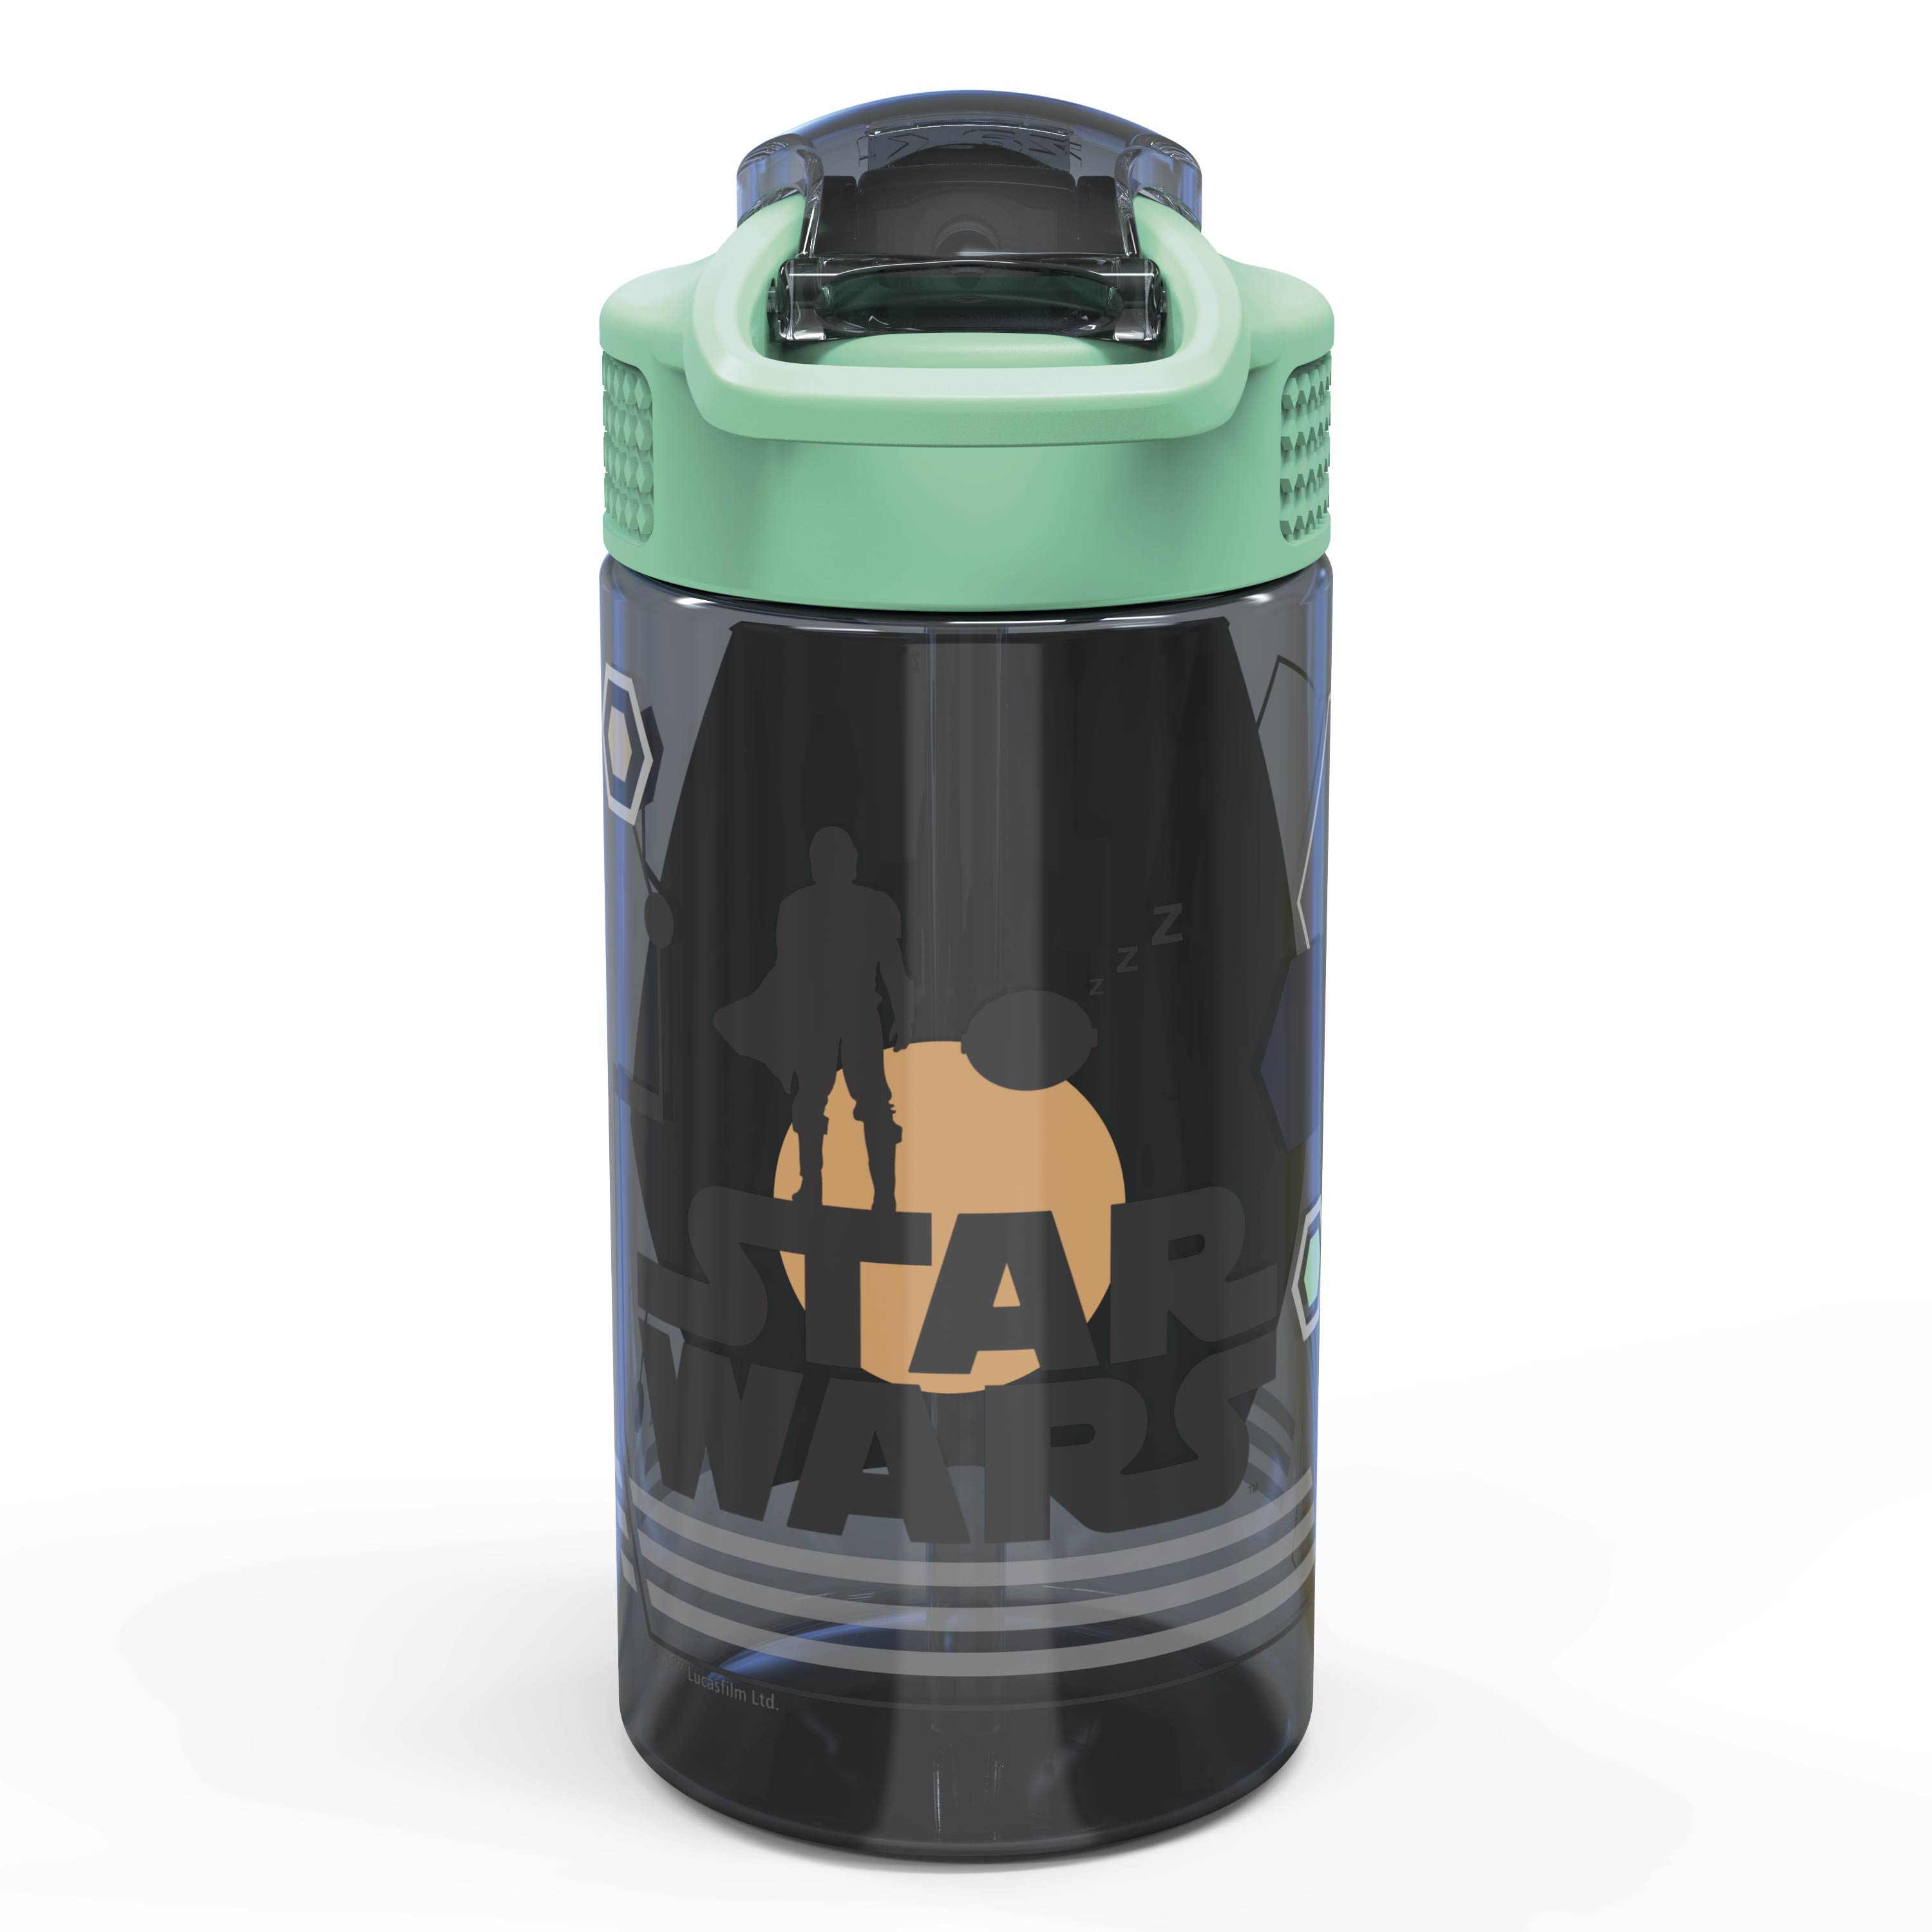 Star Wars: The Mandalorian 16 ounce Water Bottle, The Child slideshow image 6